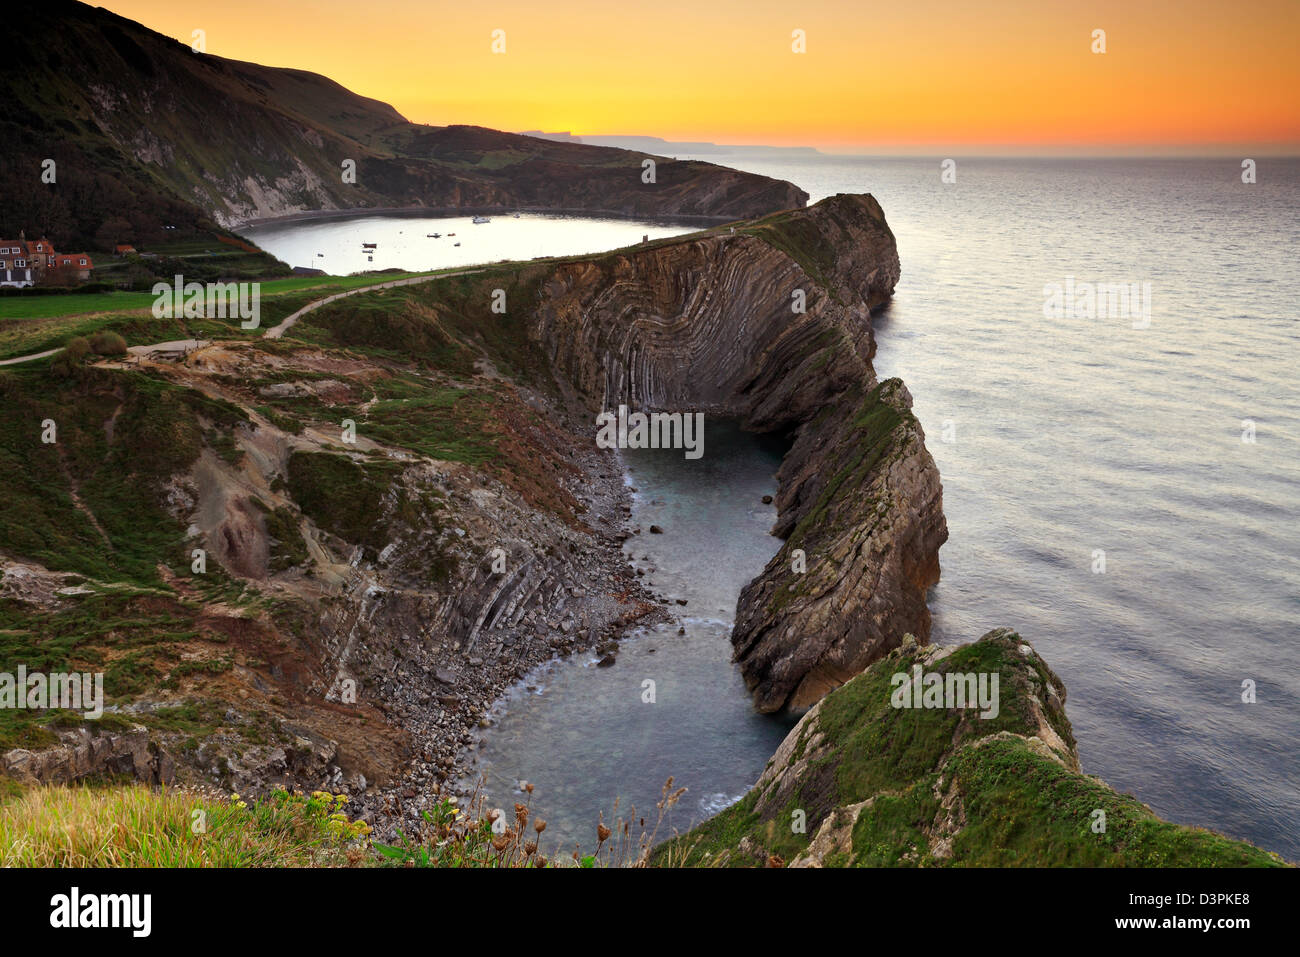 Stair Hole and Llulworth Cove at sunrise, Dorset - Stock Image